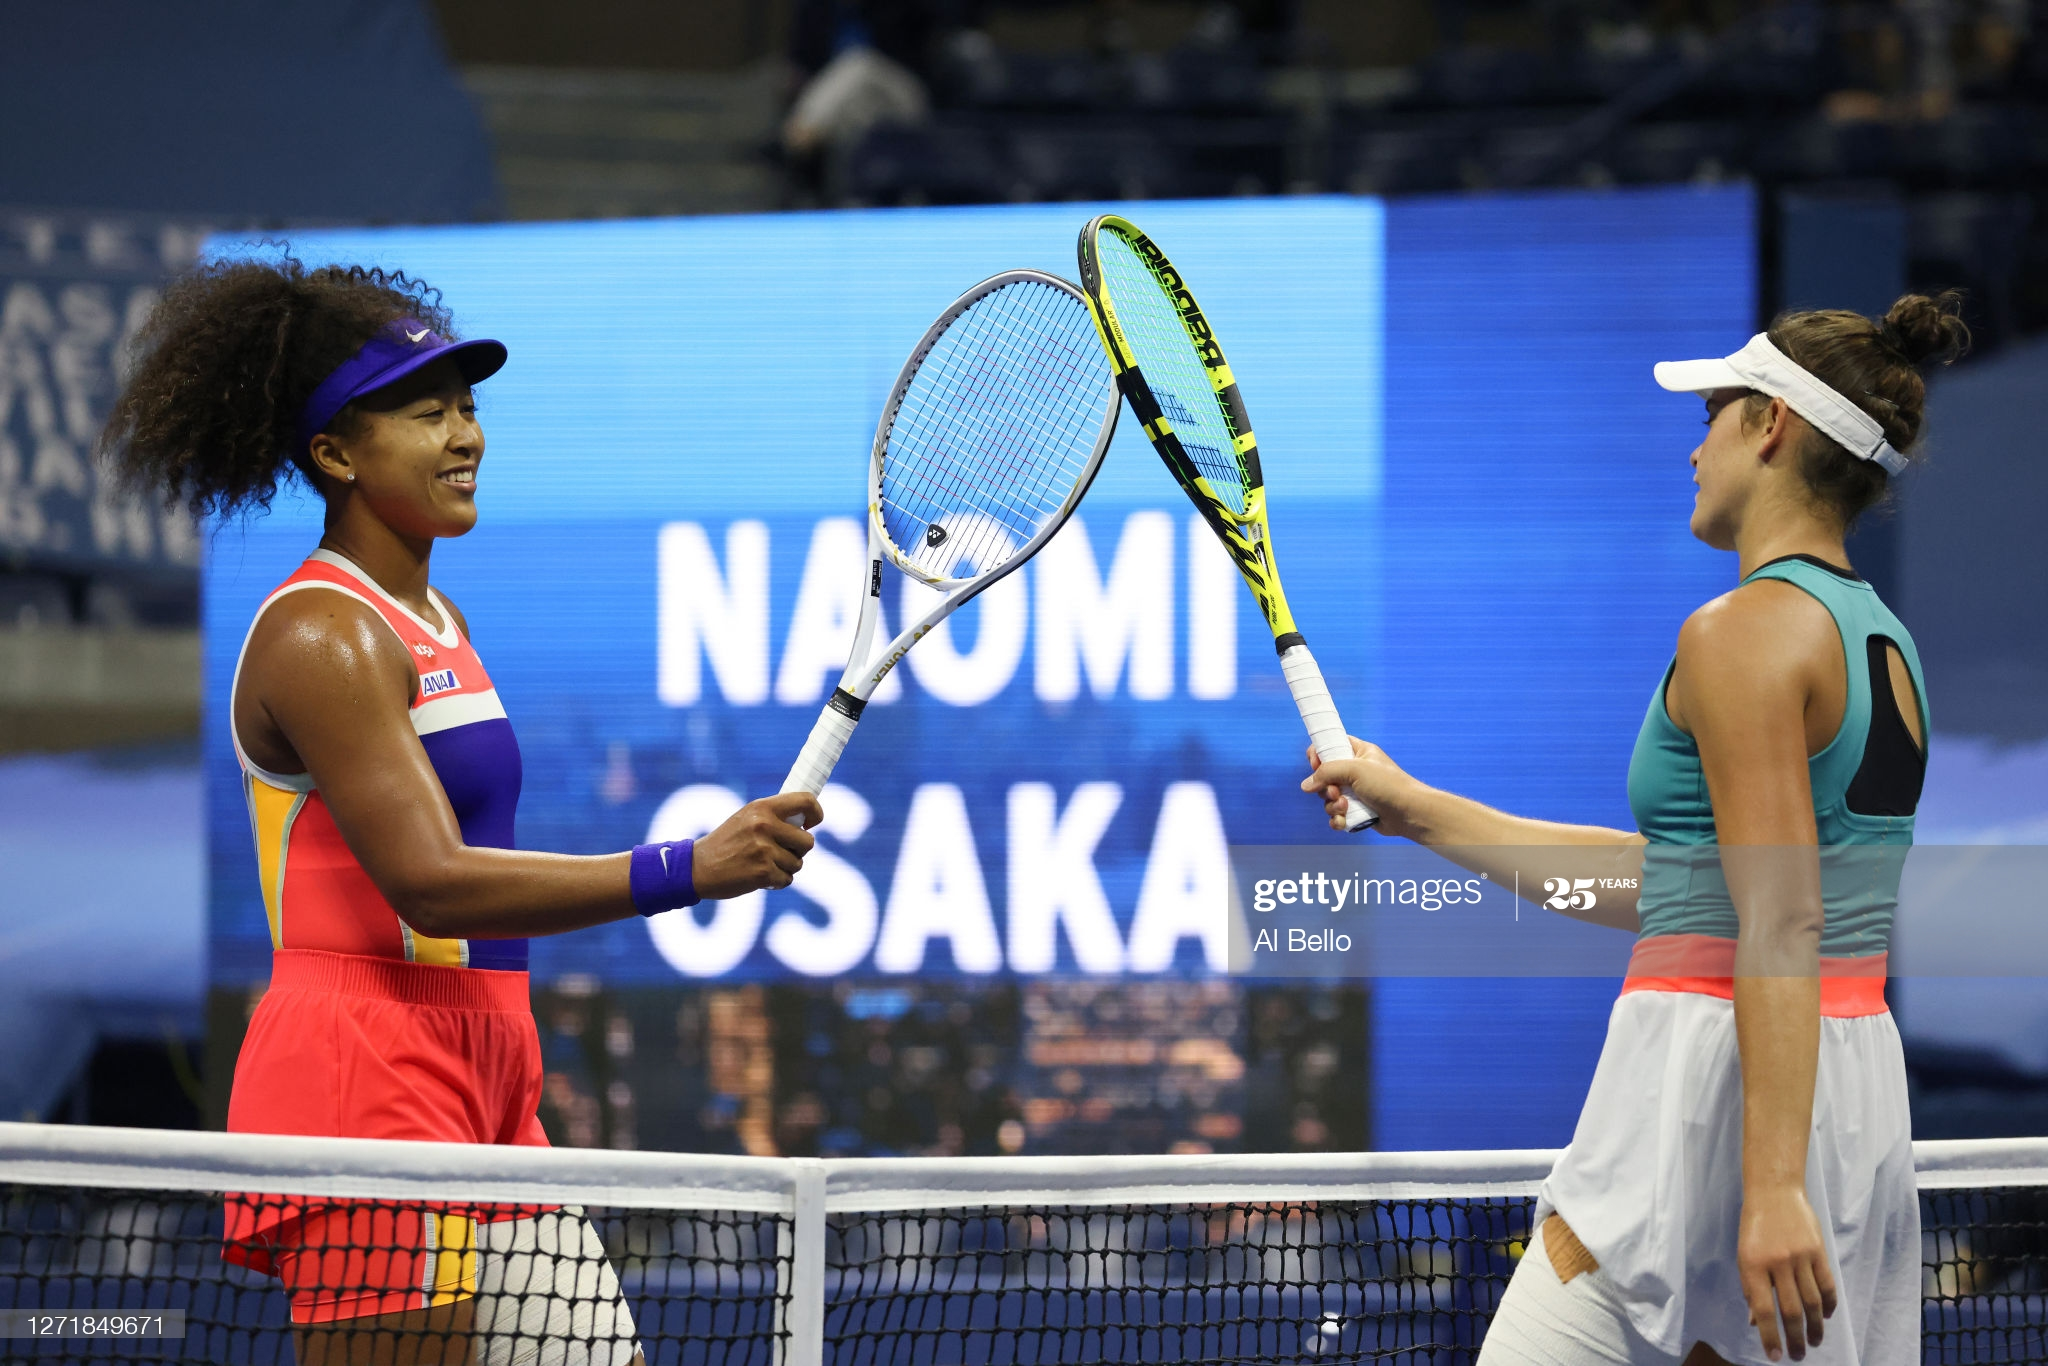 osaka brady day 11 us open 2020